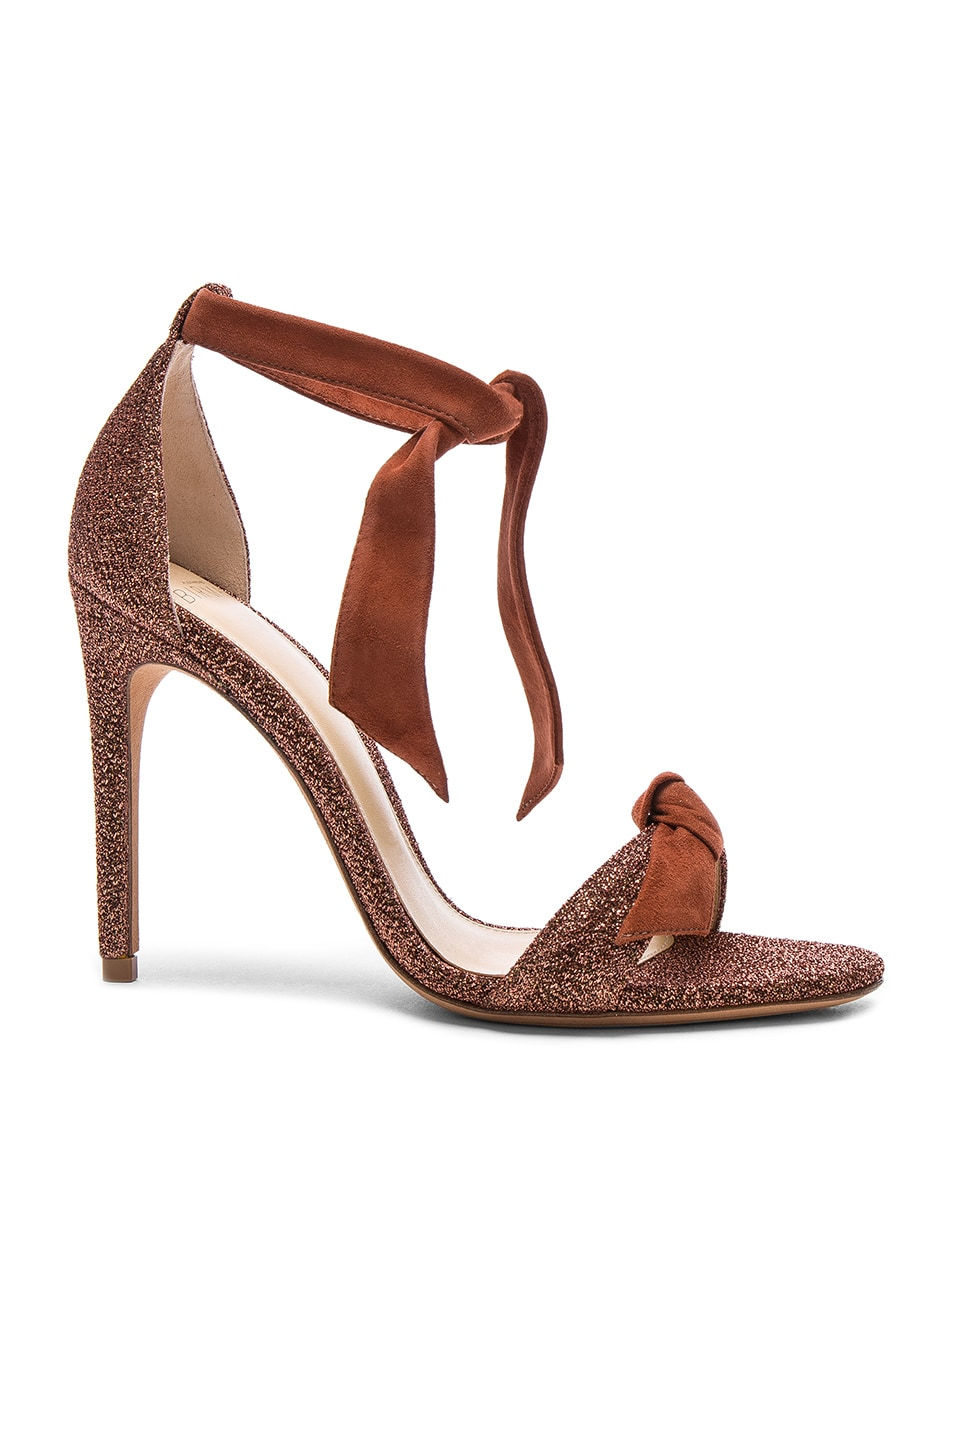 Image 1 of Alexandre Birman Suede and Metallic Fabric Clarita Heels in Cinnamon